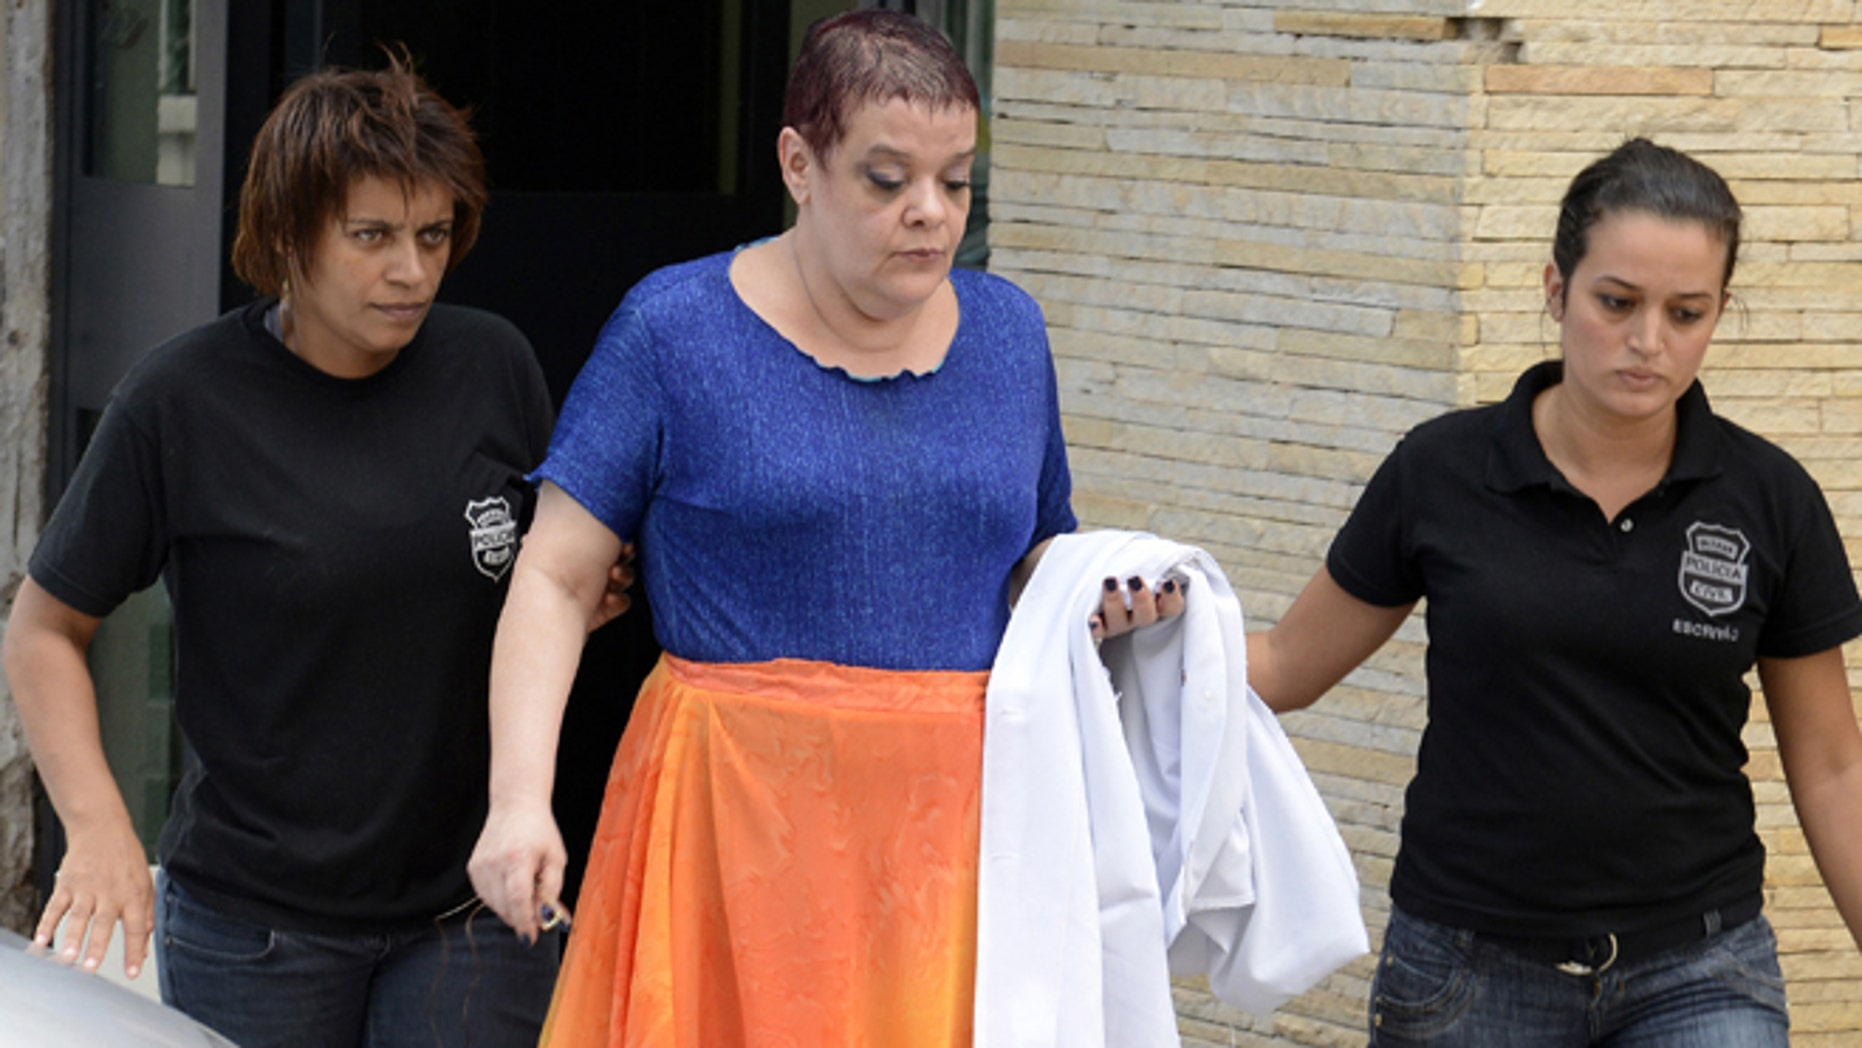 """Feb. 19, 2013: In this photo, Virginia Helena Soares de Souza, center, is escorted by police officers to a temporary prison in Curitiba, Parana state, Brazil. According to Brazil's health ministry, Soares de Souza, who's a medical doctor, and seven assistants are suspected of killing seven terminally ill patients in a southern Brazilian hospital, injecting them with """"drug cocktails"""" and of tampering with their respirators."""